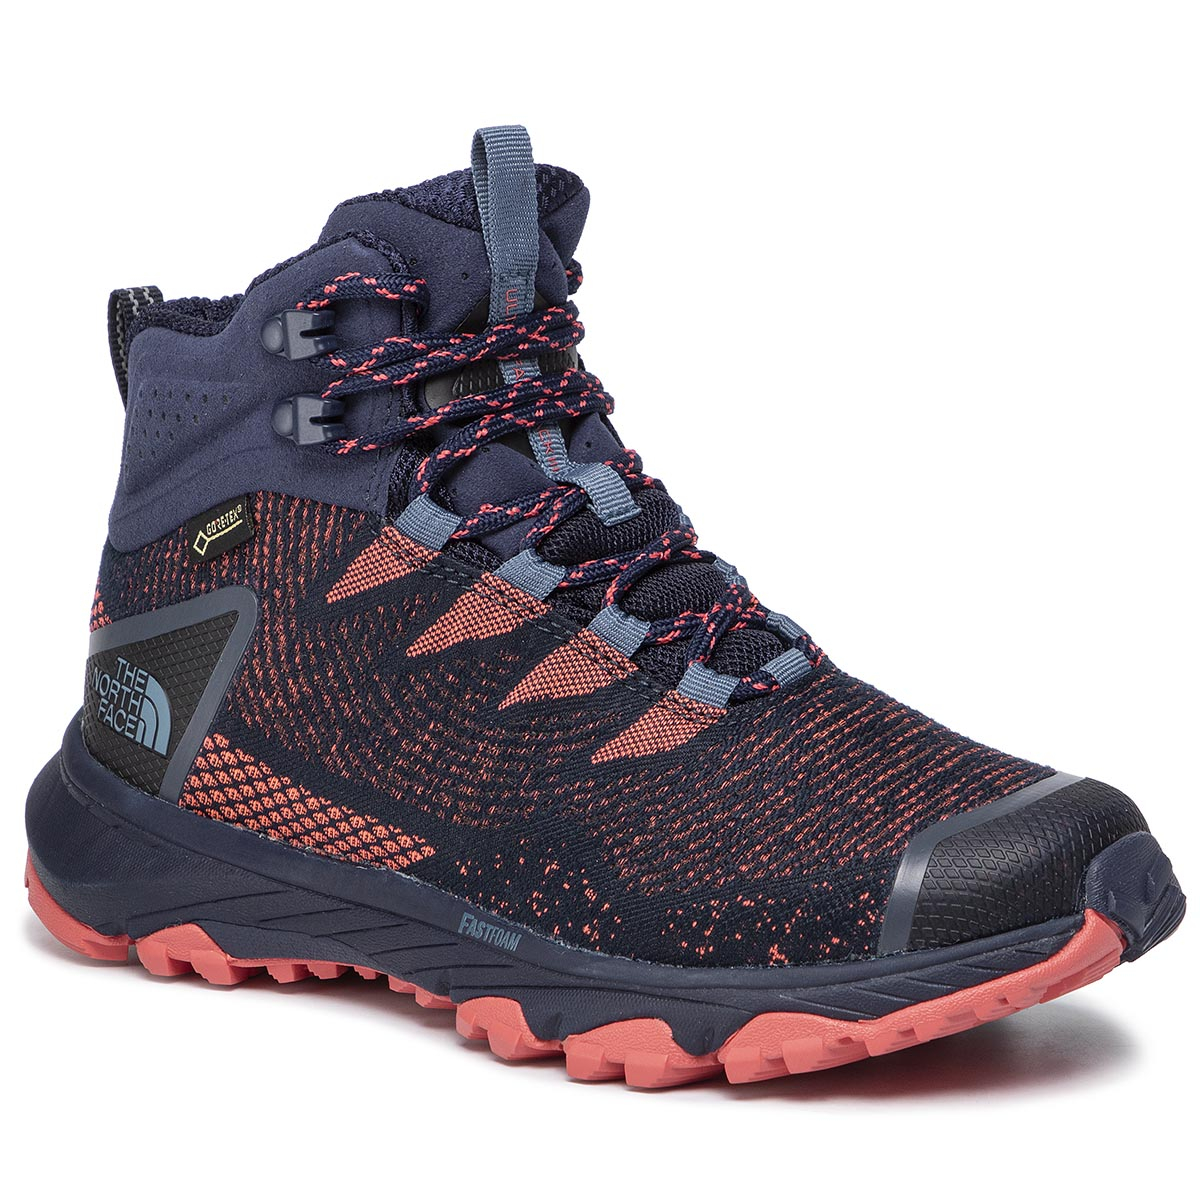 Trekkings THE NORTH FACE - Ultra Fastpack III Mid Gtx (Woven) GORE-TEX NF0A3MKVC7W Peacoat Navy/Fiesta Red